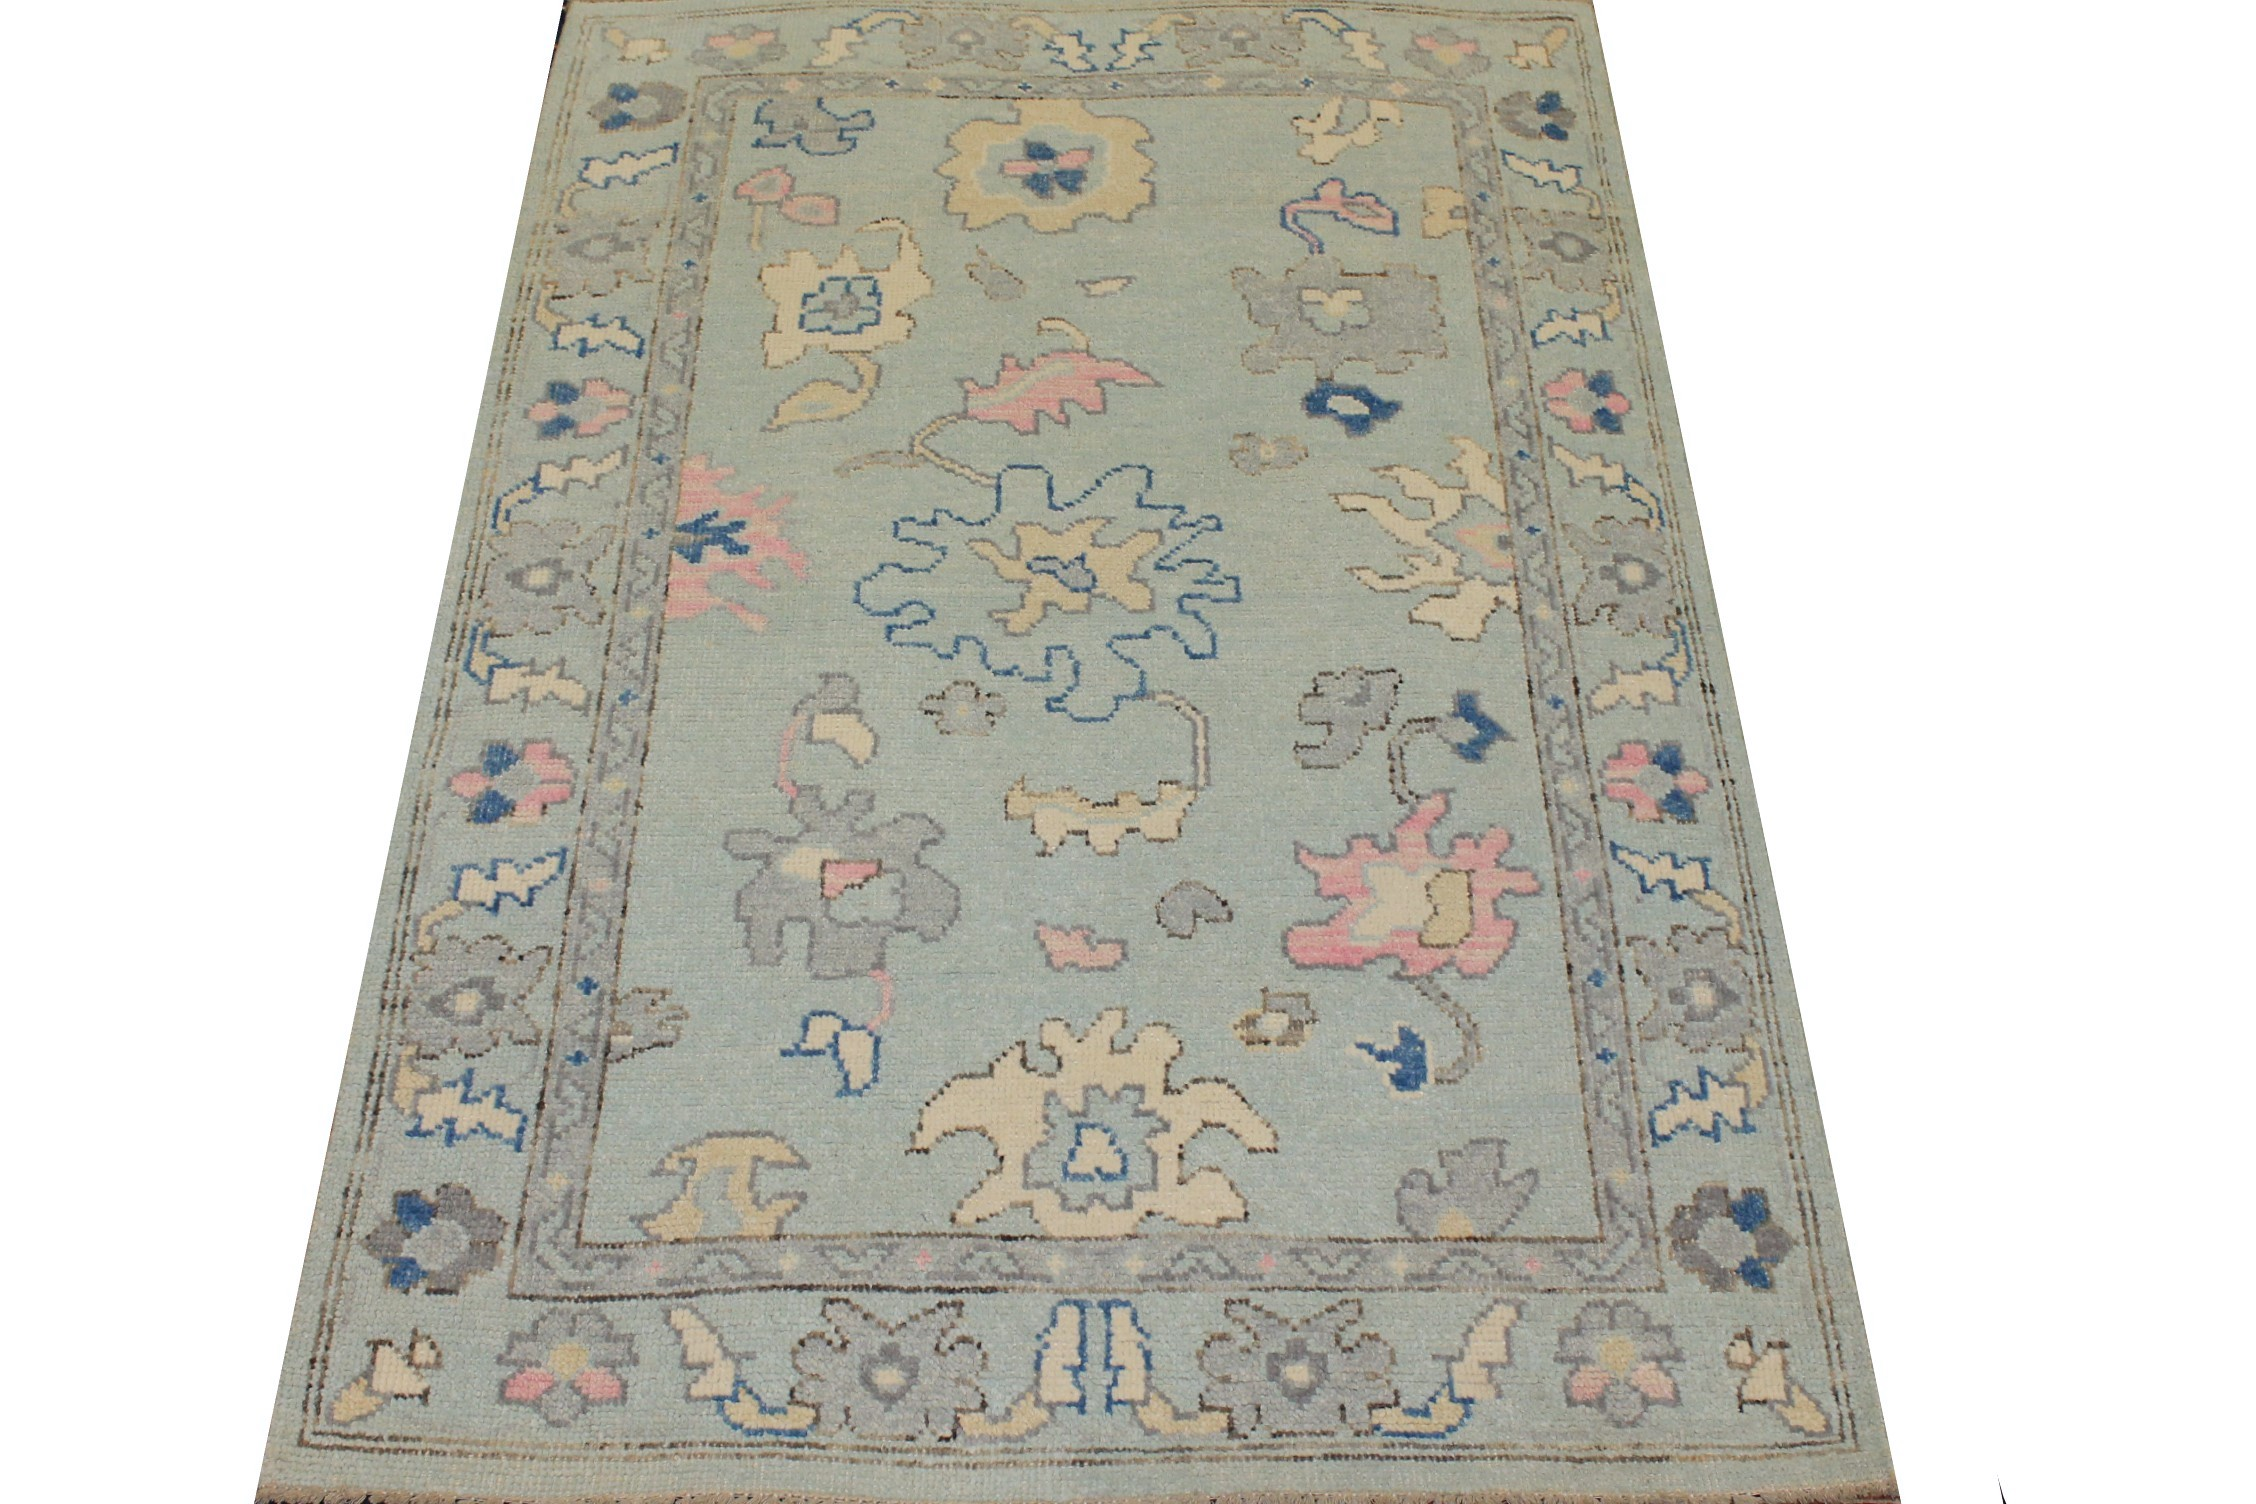 4x6 Oushak Hand Knotted Wool Area Rug - MR025330